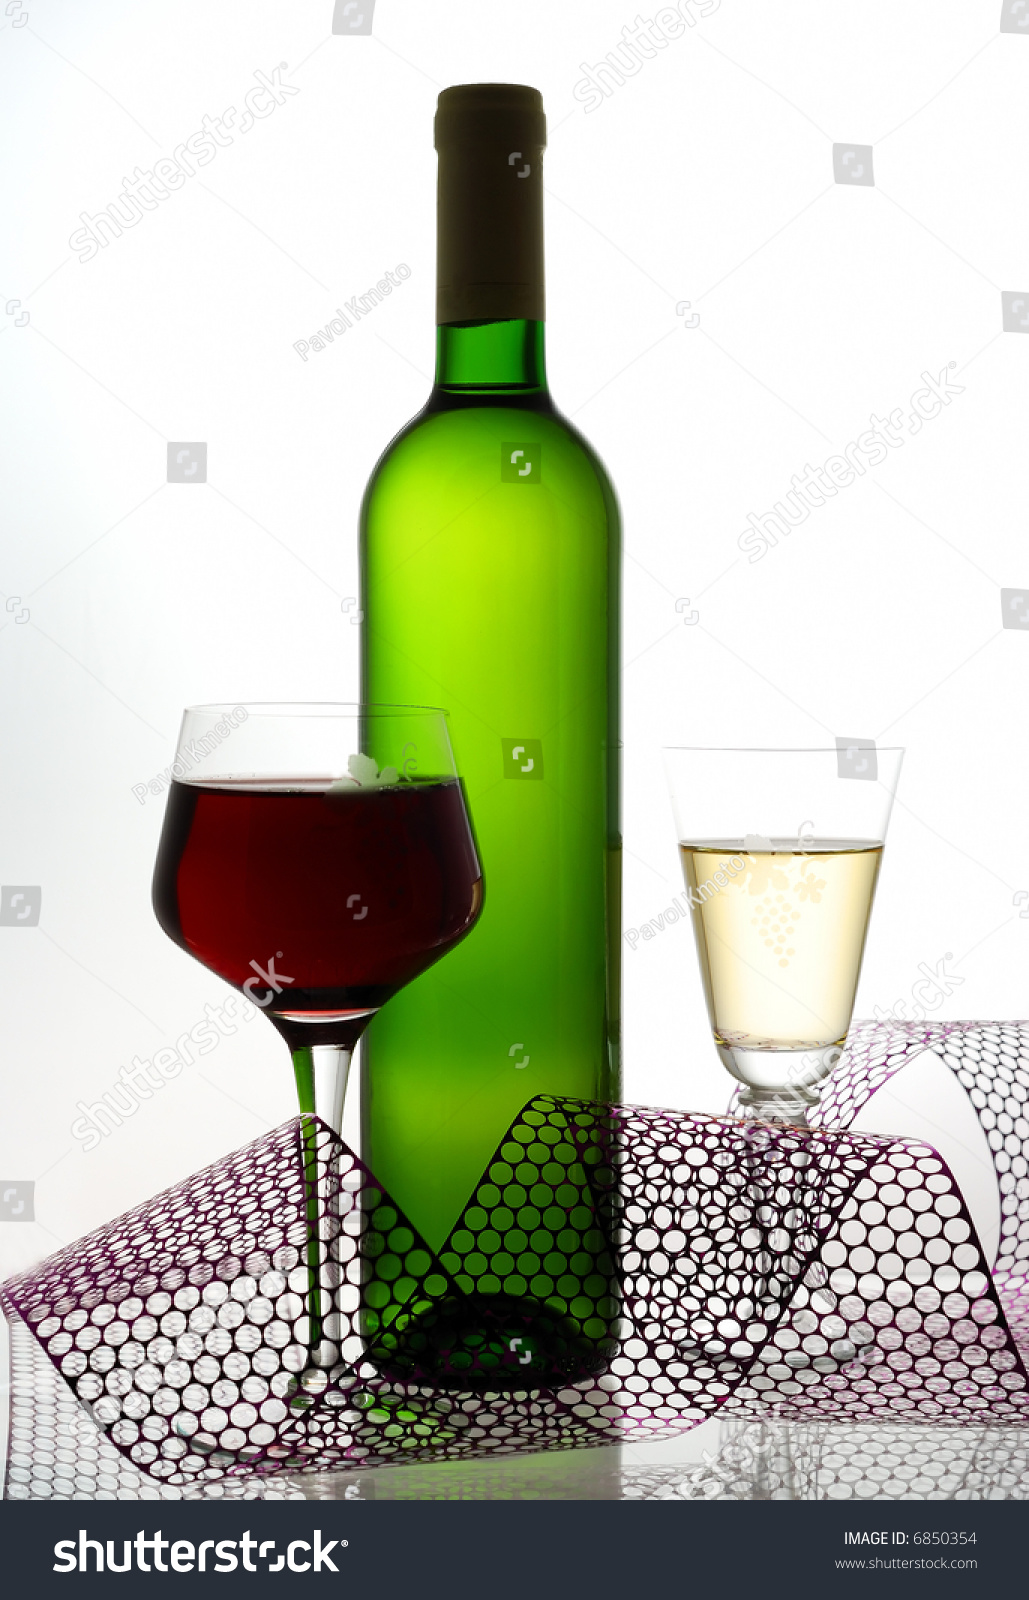 red and white wine opposite white light stock photo 6850354 shutterstock. Black Bedroom Furniture Sets. Home Design Ideas